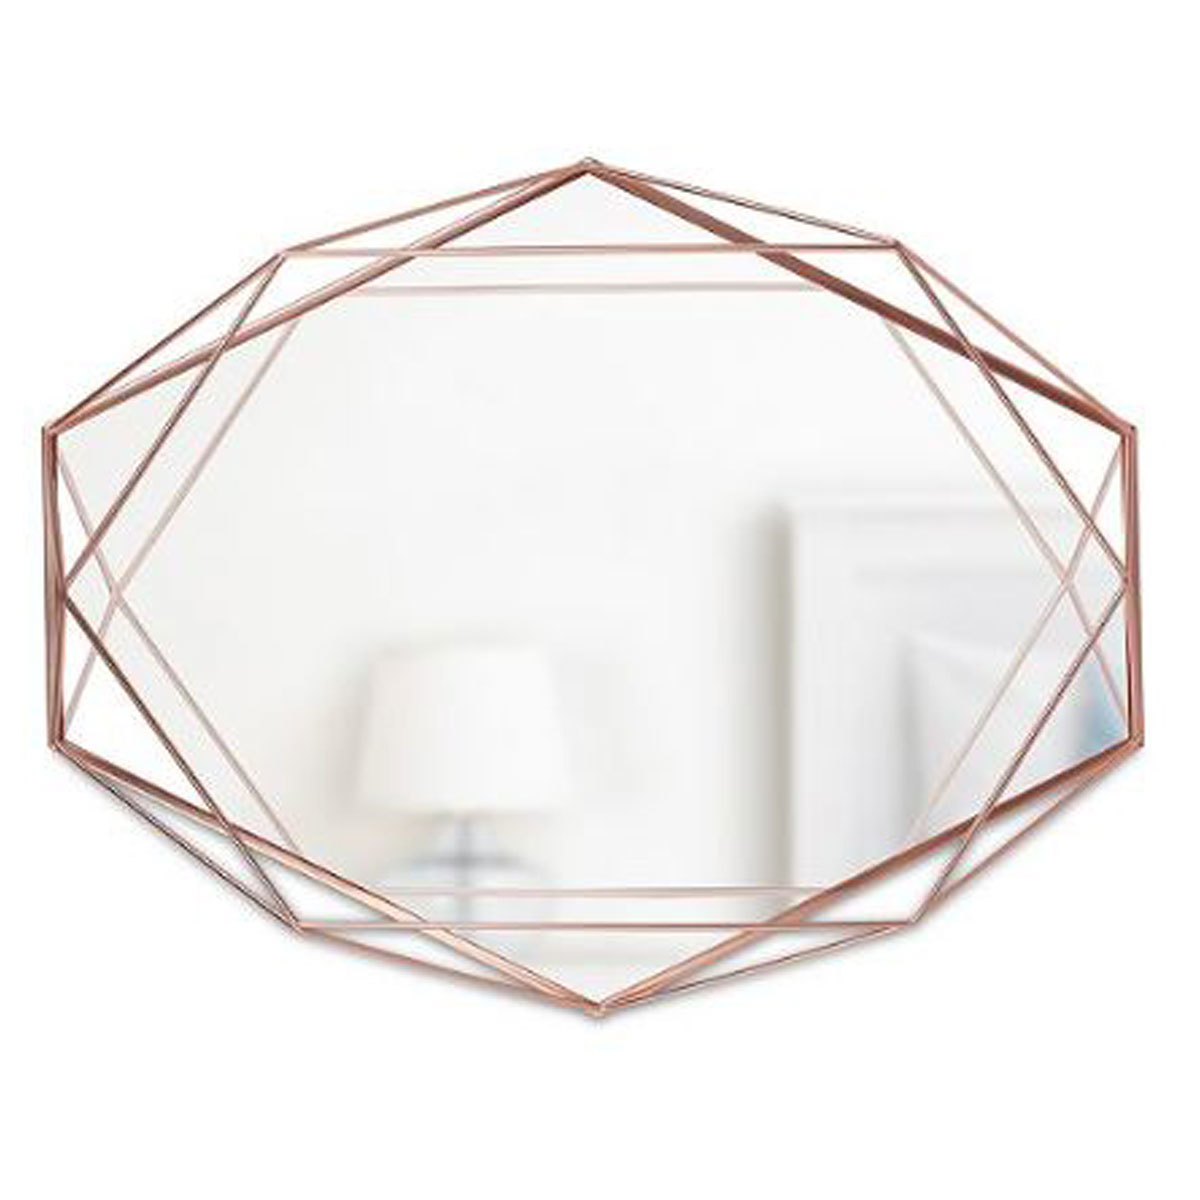 geometric mirror with copper details from Macy's photo